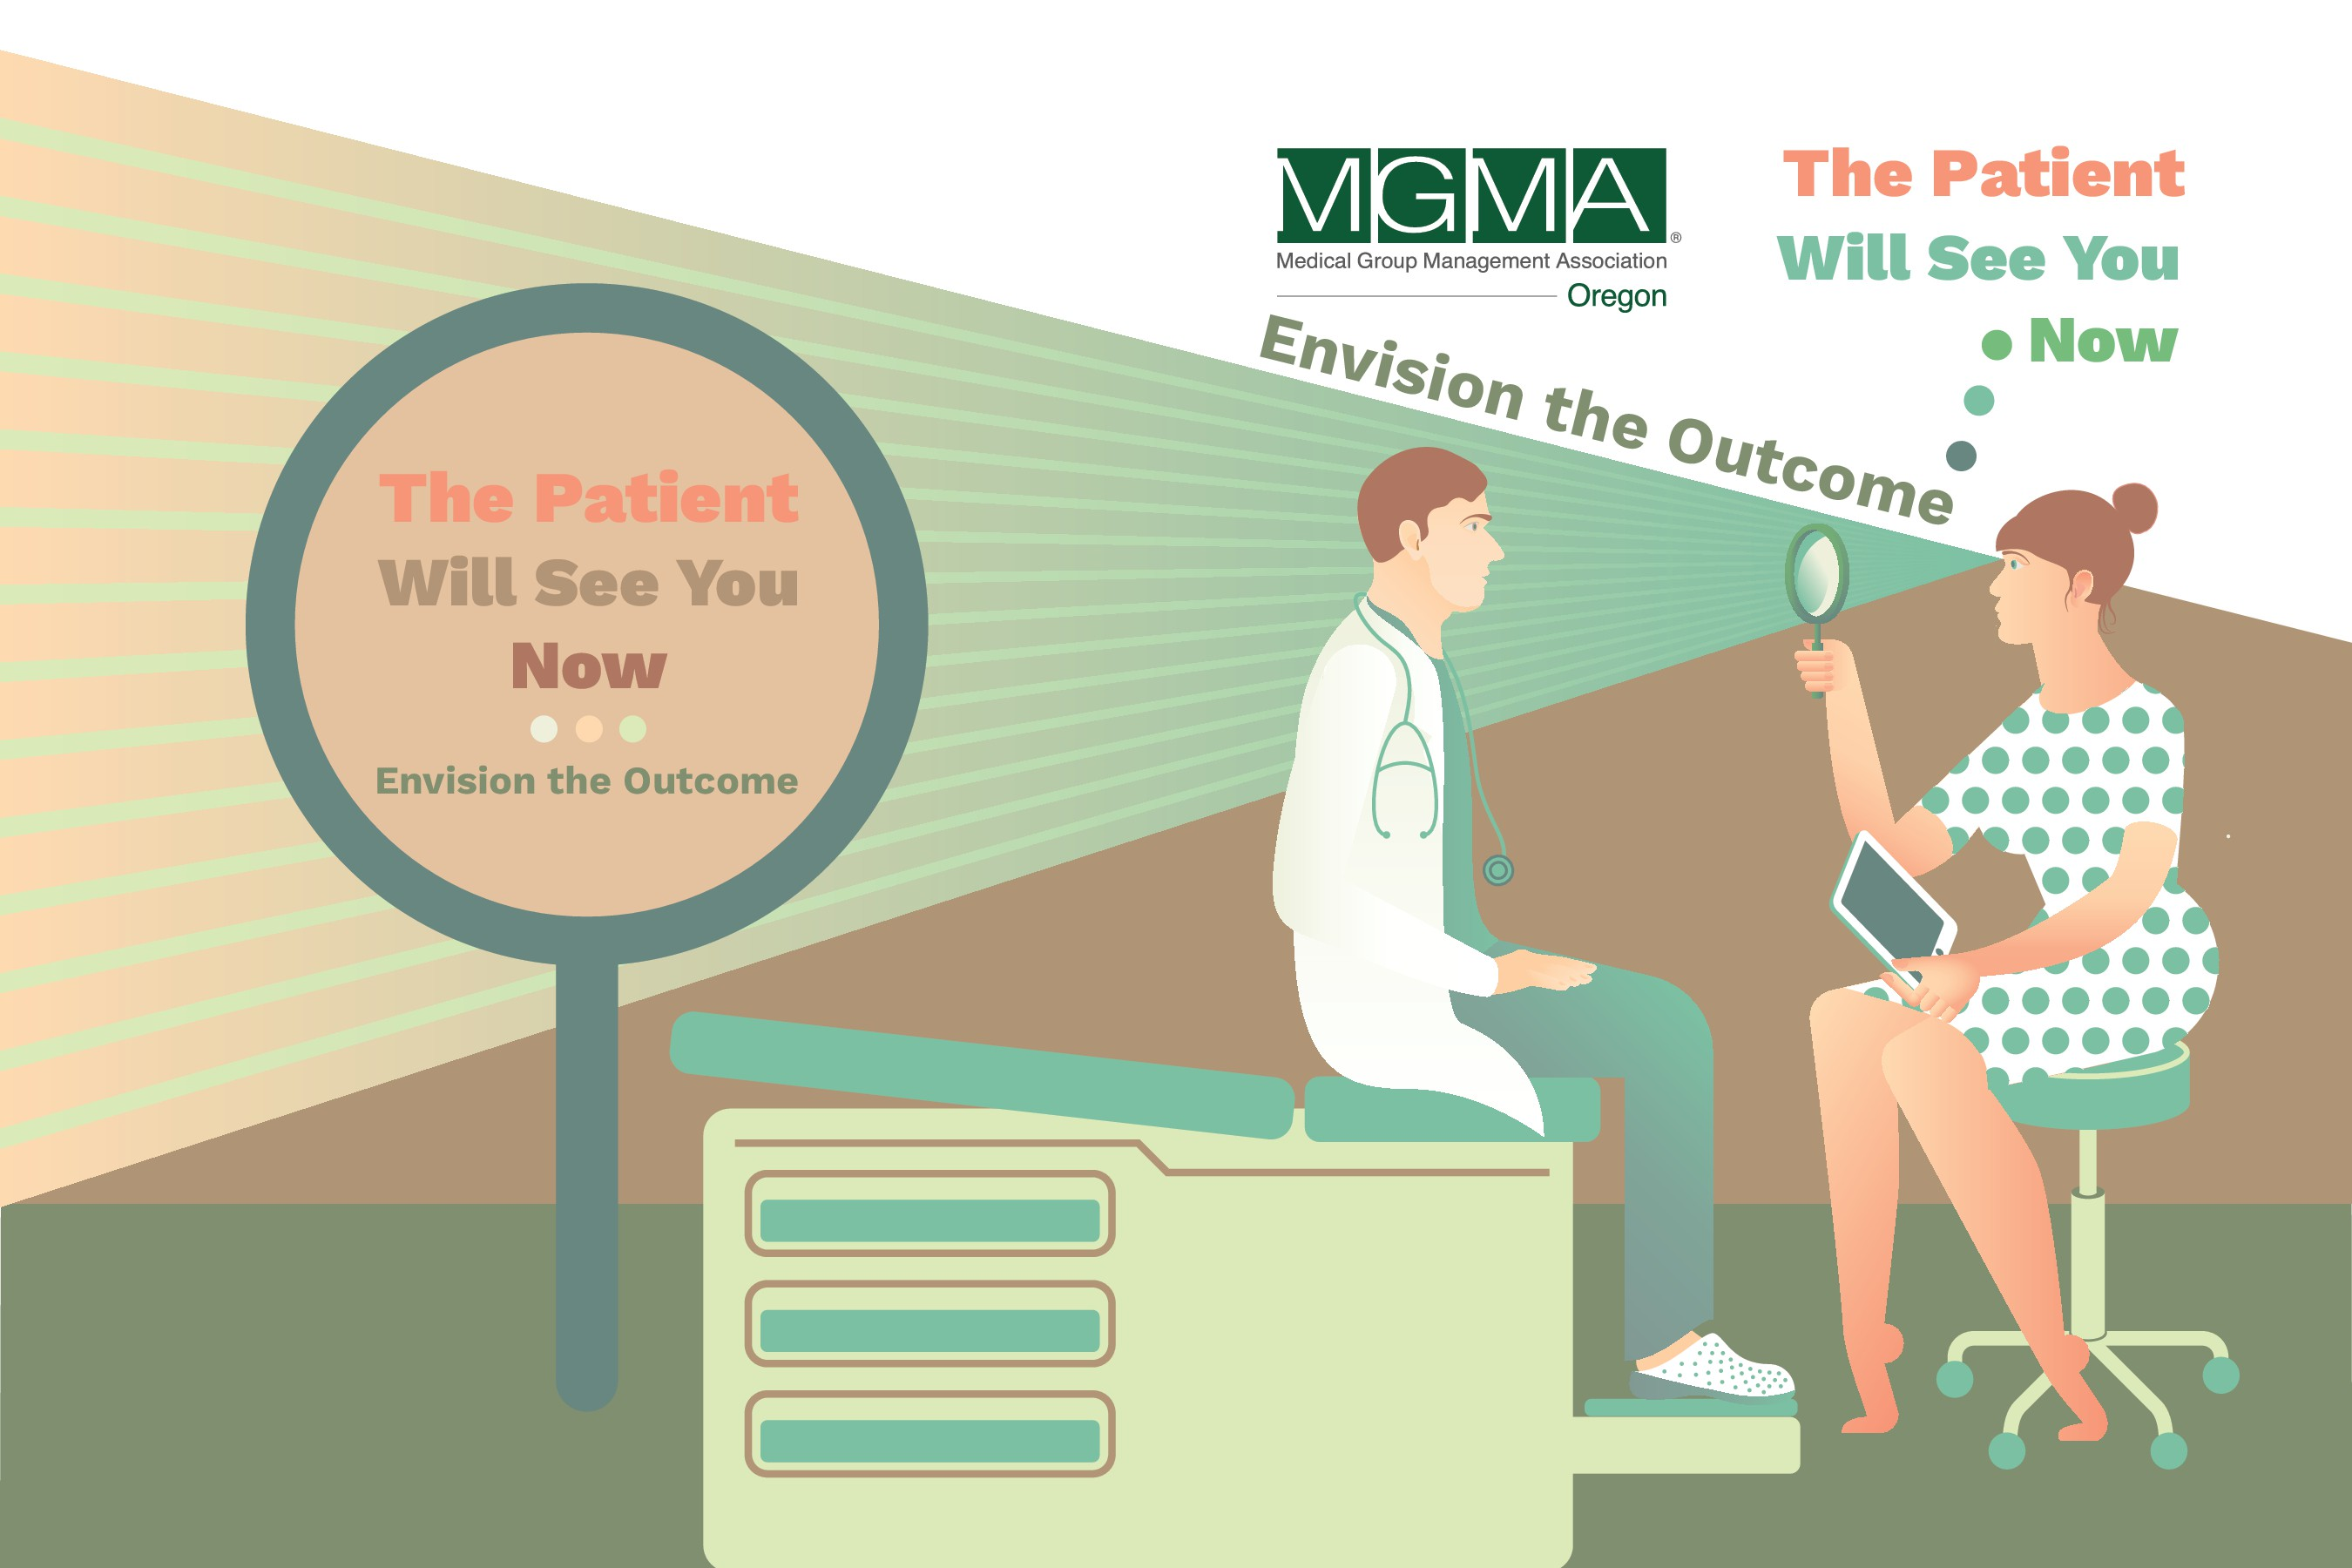 Create the conference meeting graphic illustration for Oregon Medical Group Managers Association